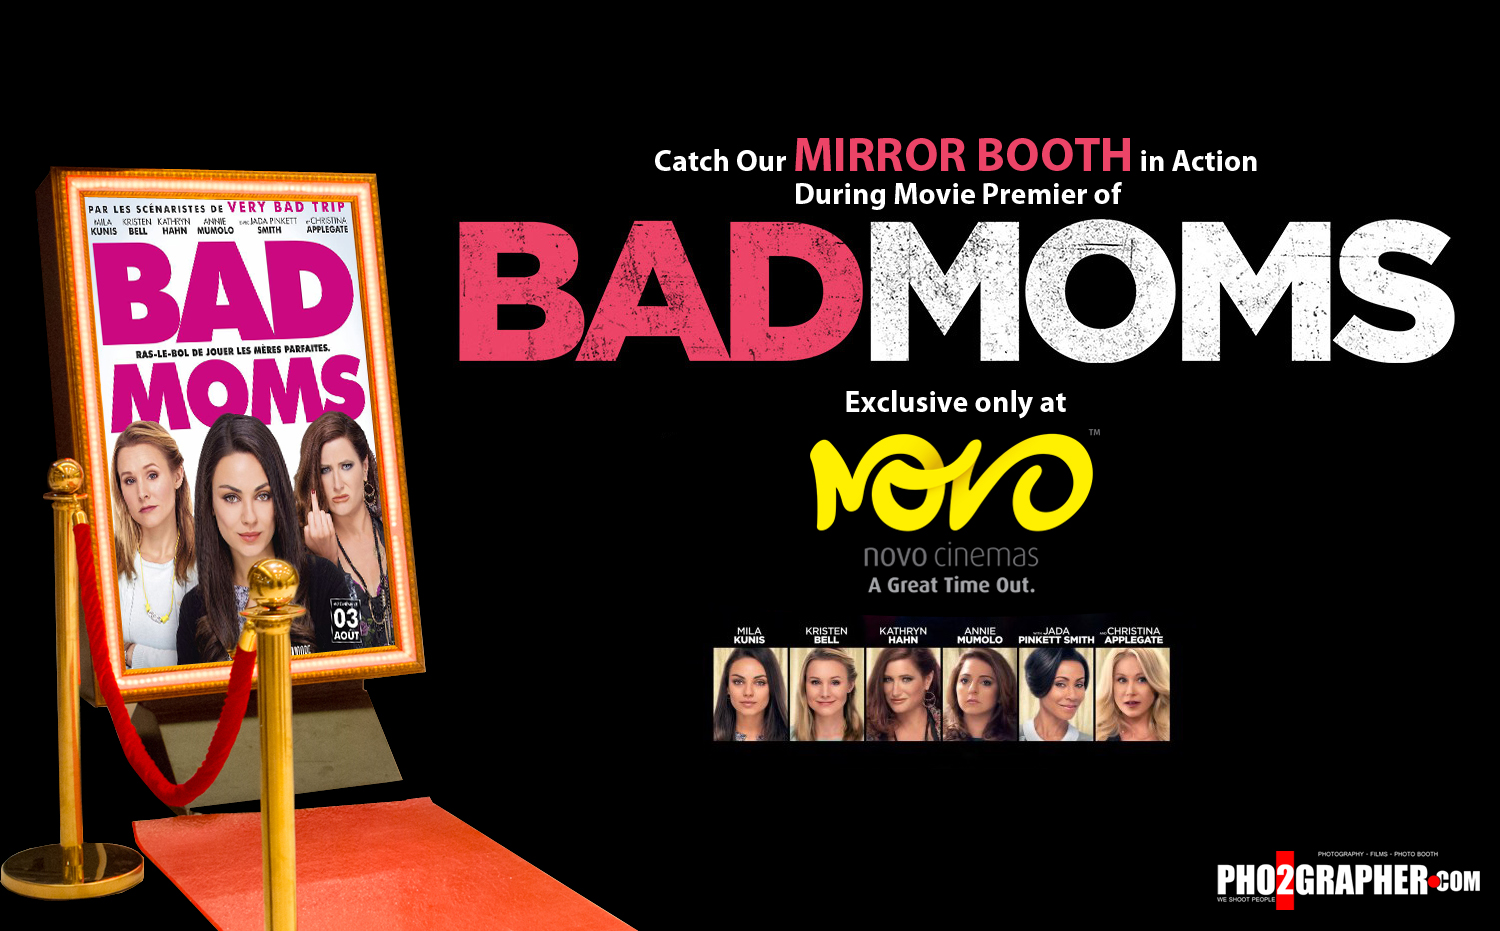 Bad moms movie Dubai photo booth